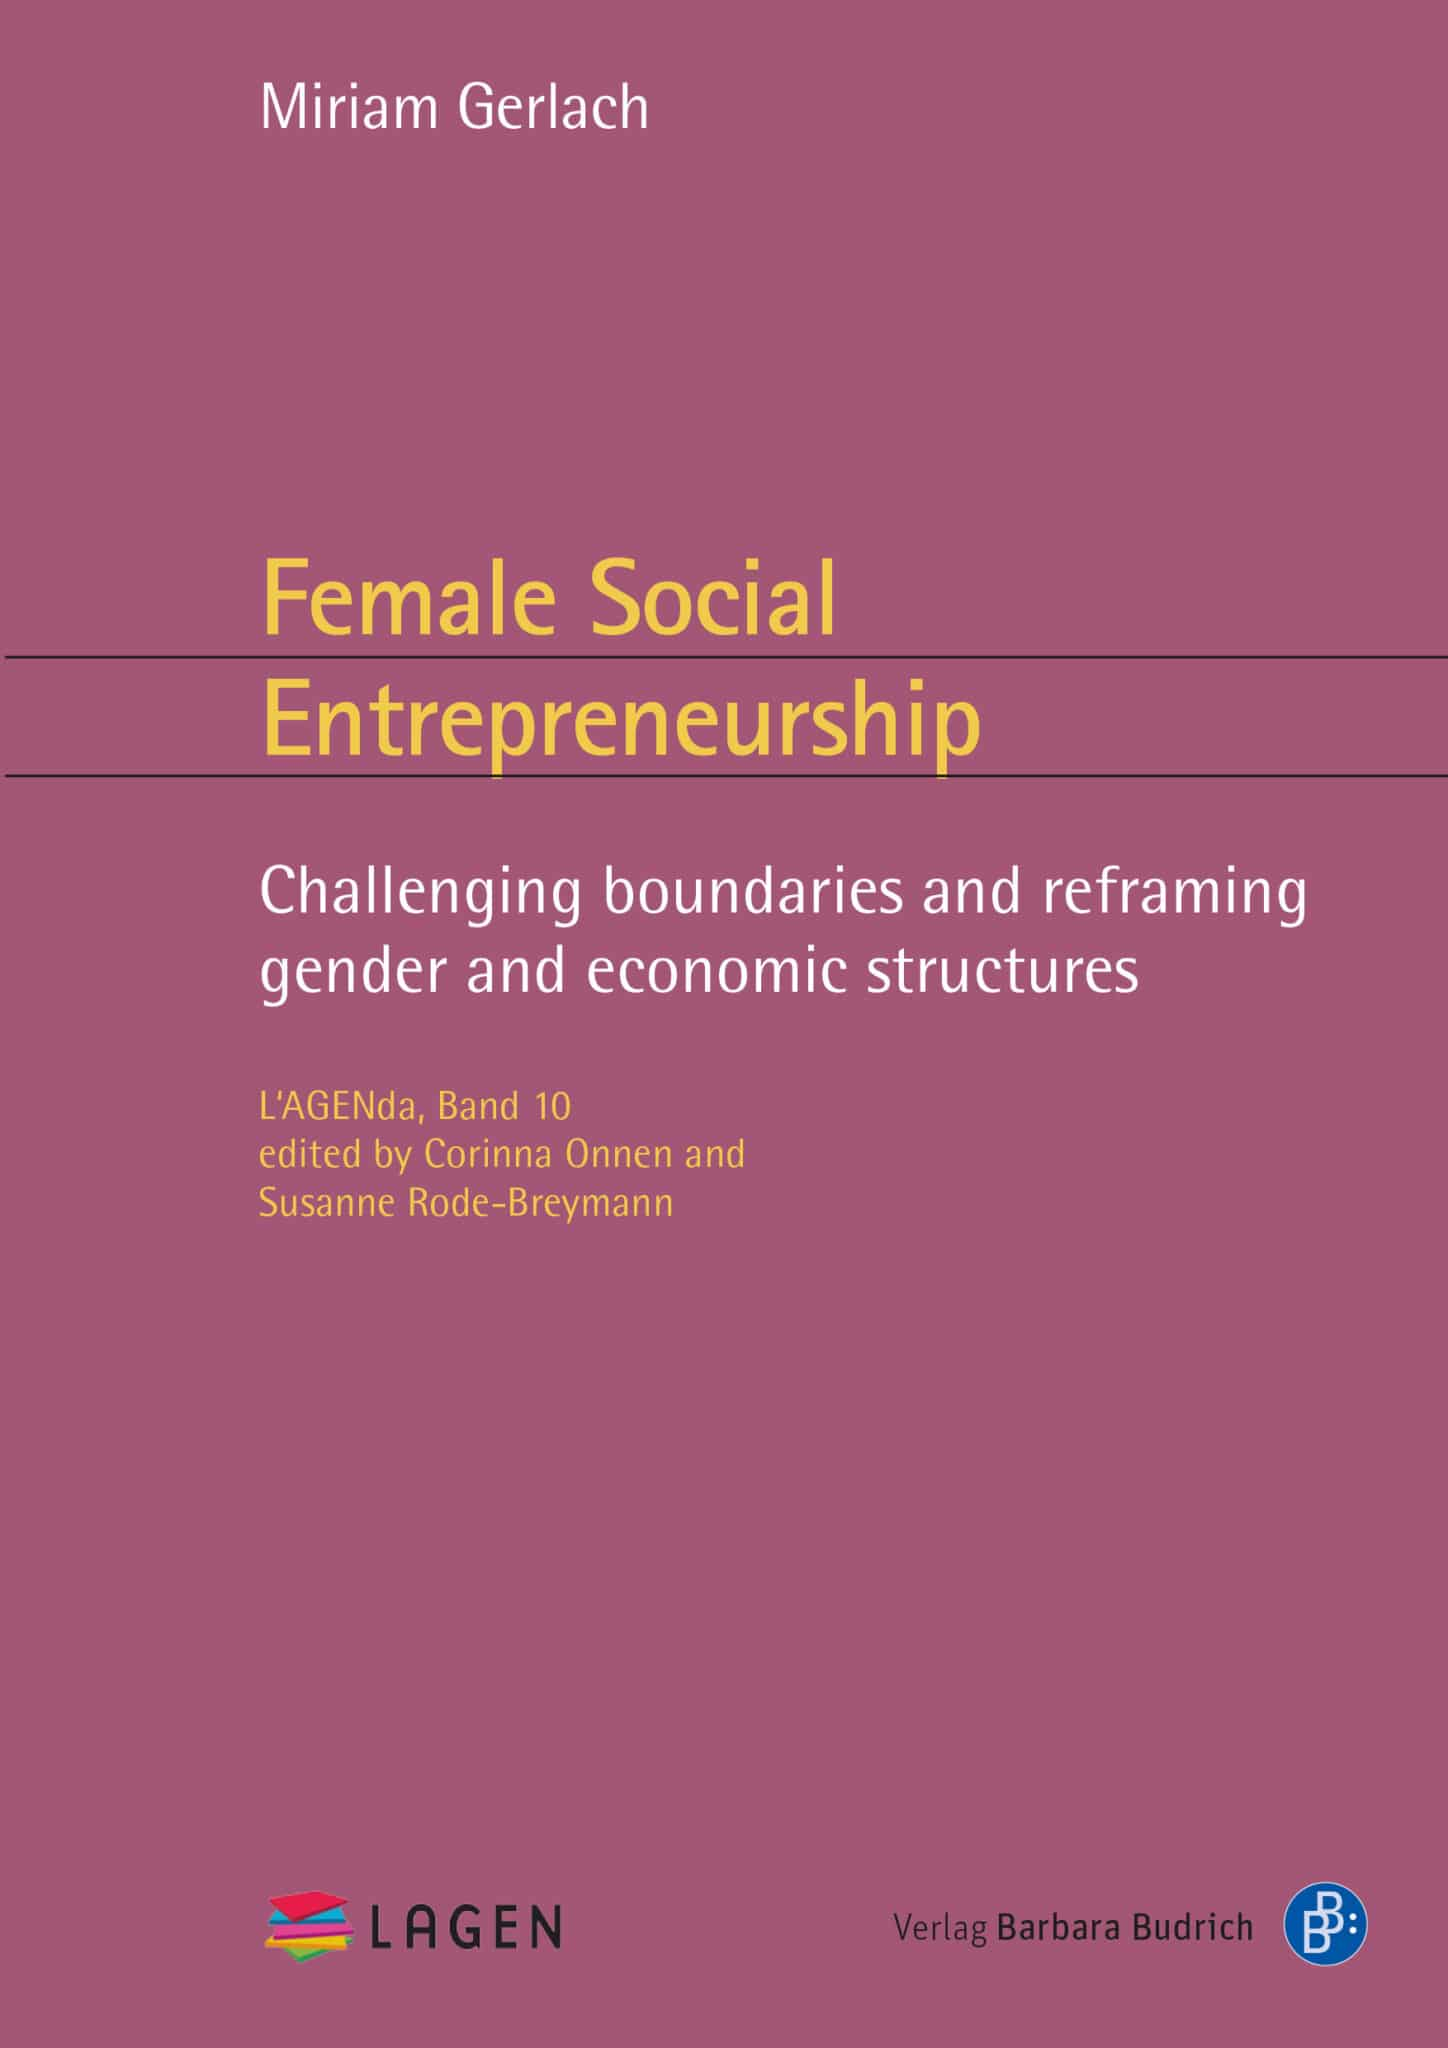 Gerlach: Female Social Entrepreneurship. Challenging boundaries and reframing. ISBN: 978-3-8474-2530-4. Verlag Barbara Budrich.